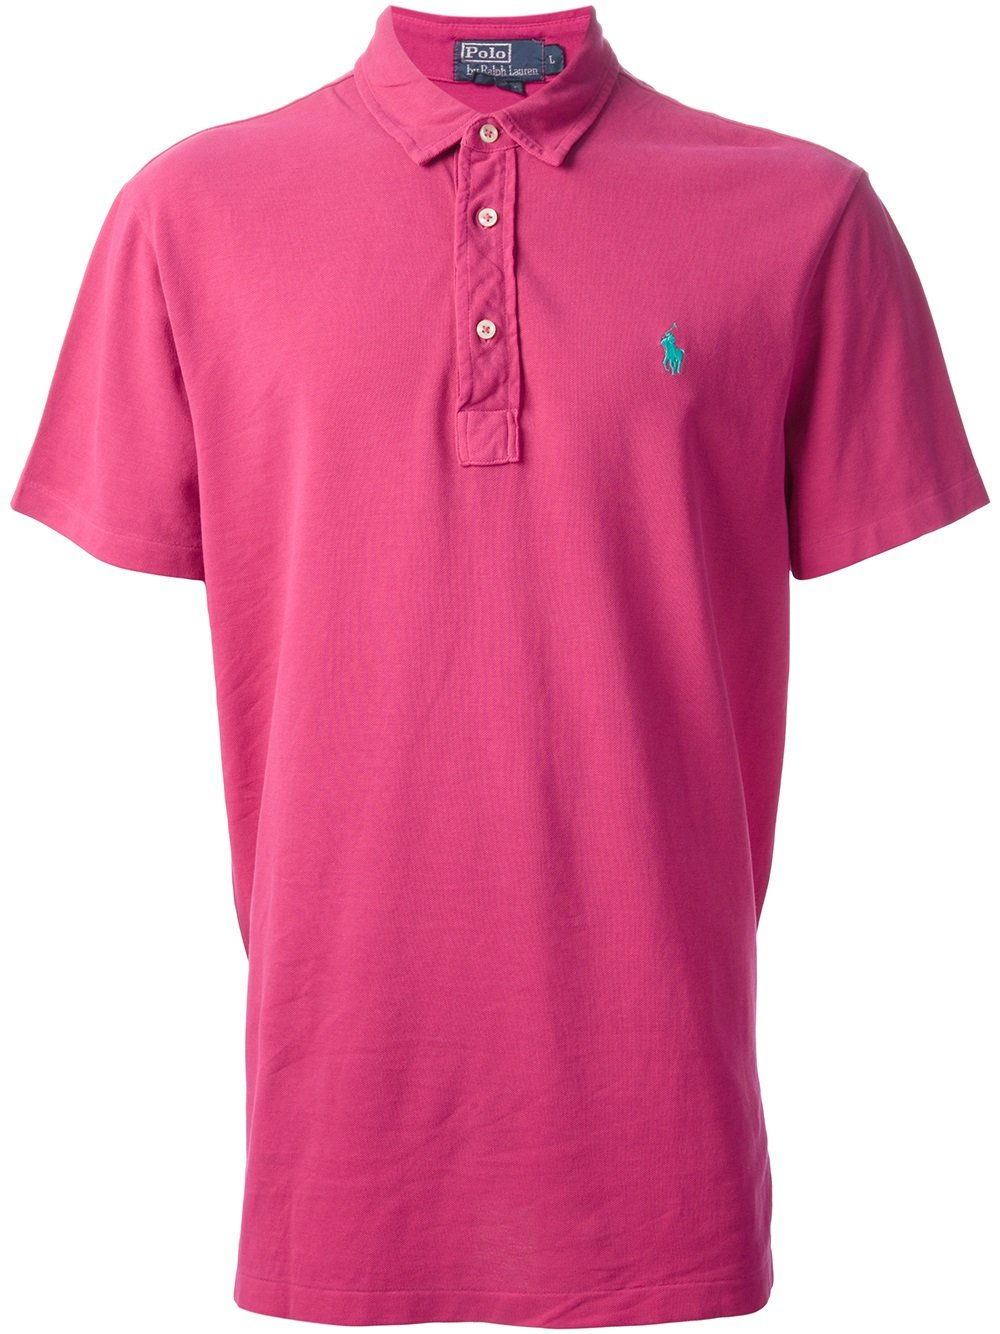 Polo ralph lauren classic polo shirt in pink for men pink for Pink and white ralph lauren shirt